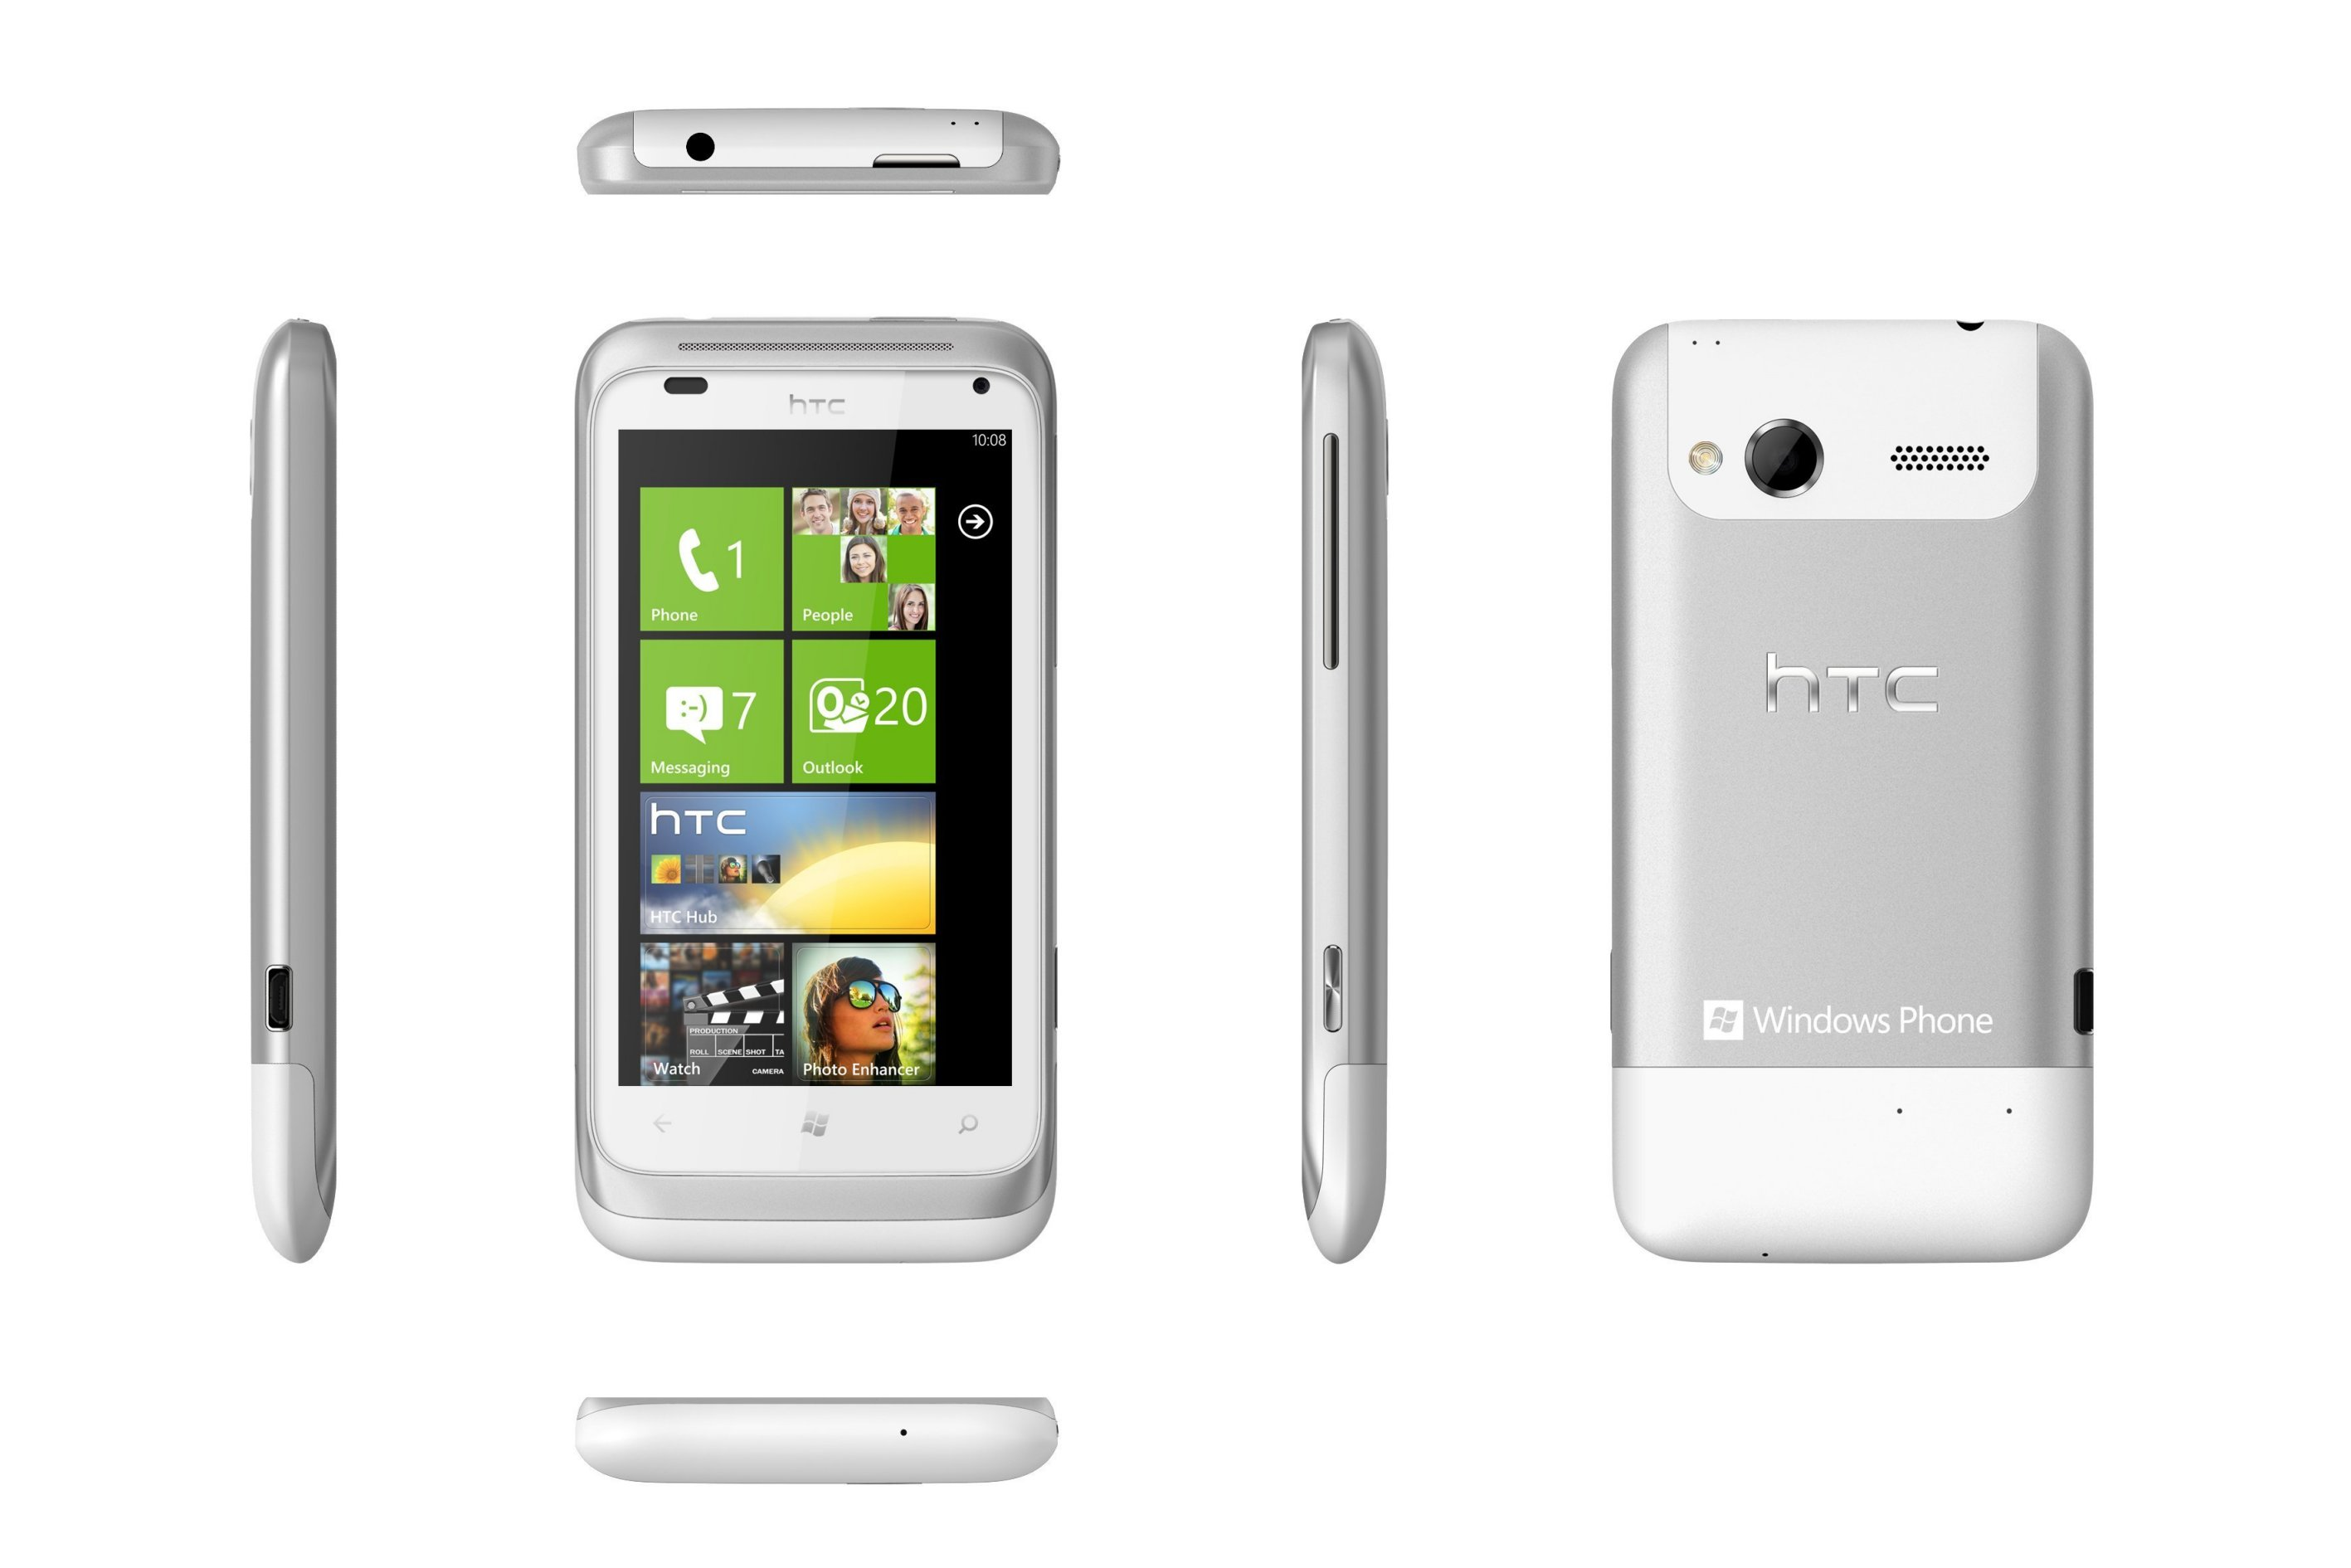 HTC Radar - nowy smartphone z Windows Phone 7 w obudowie unibody